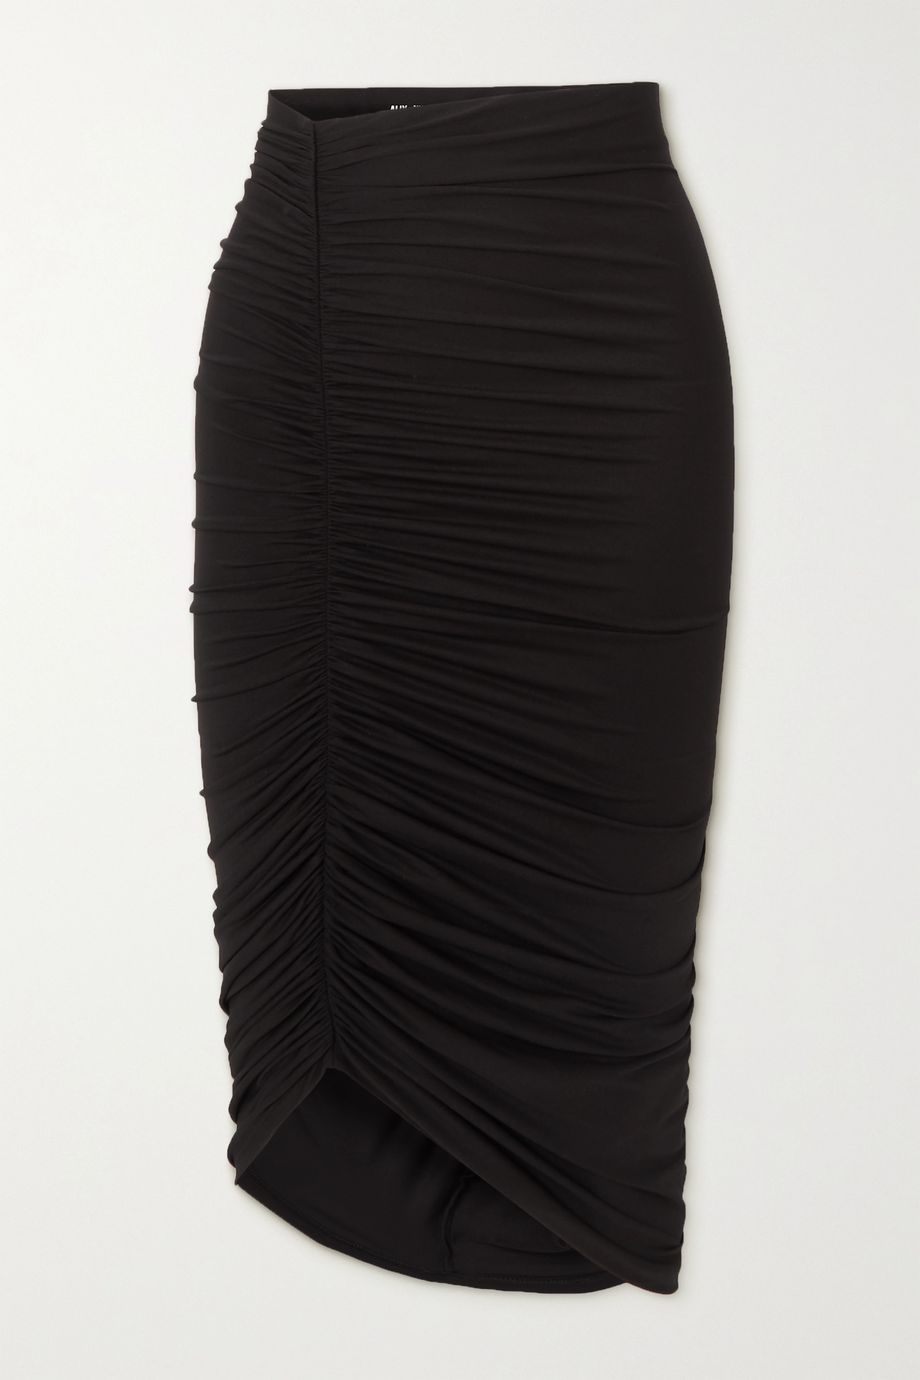 Alix NYC Langston asymmetric ruched stretch-jersey skirt